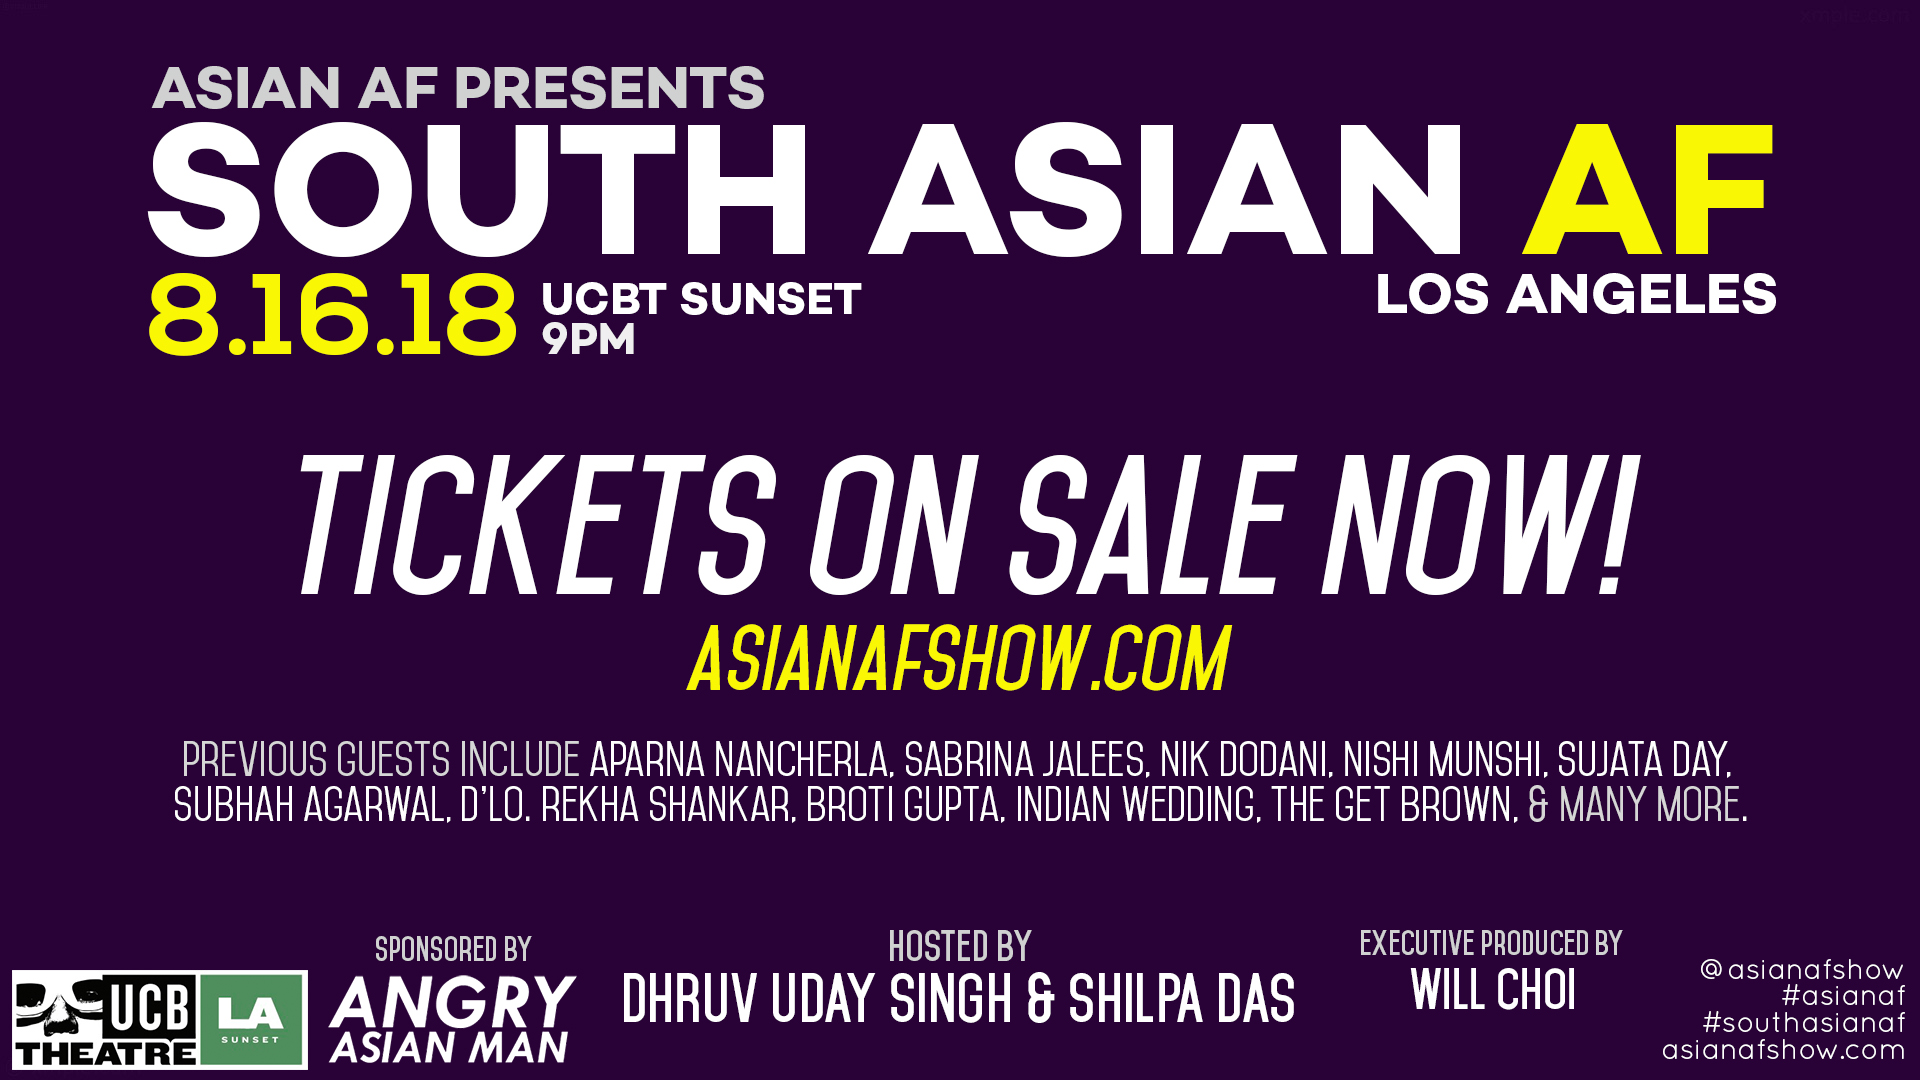 South Asian AF LA Flyer.jpg